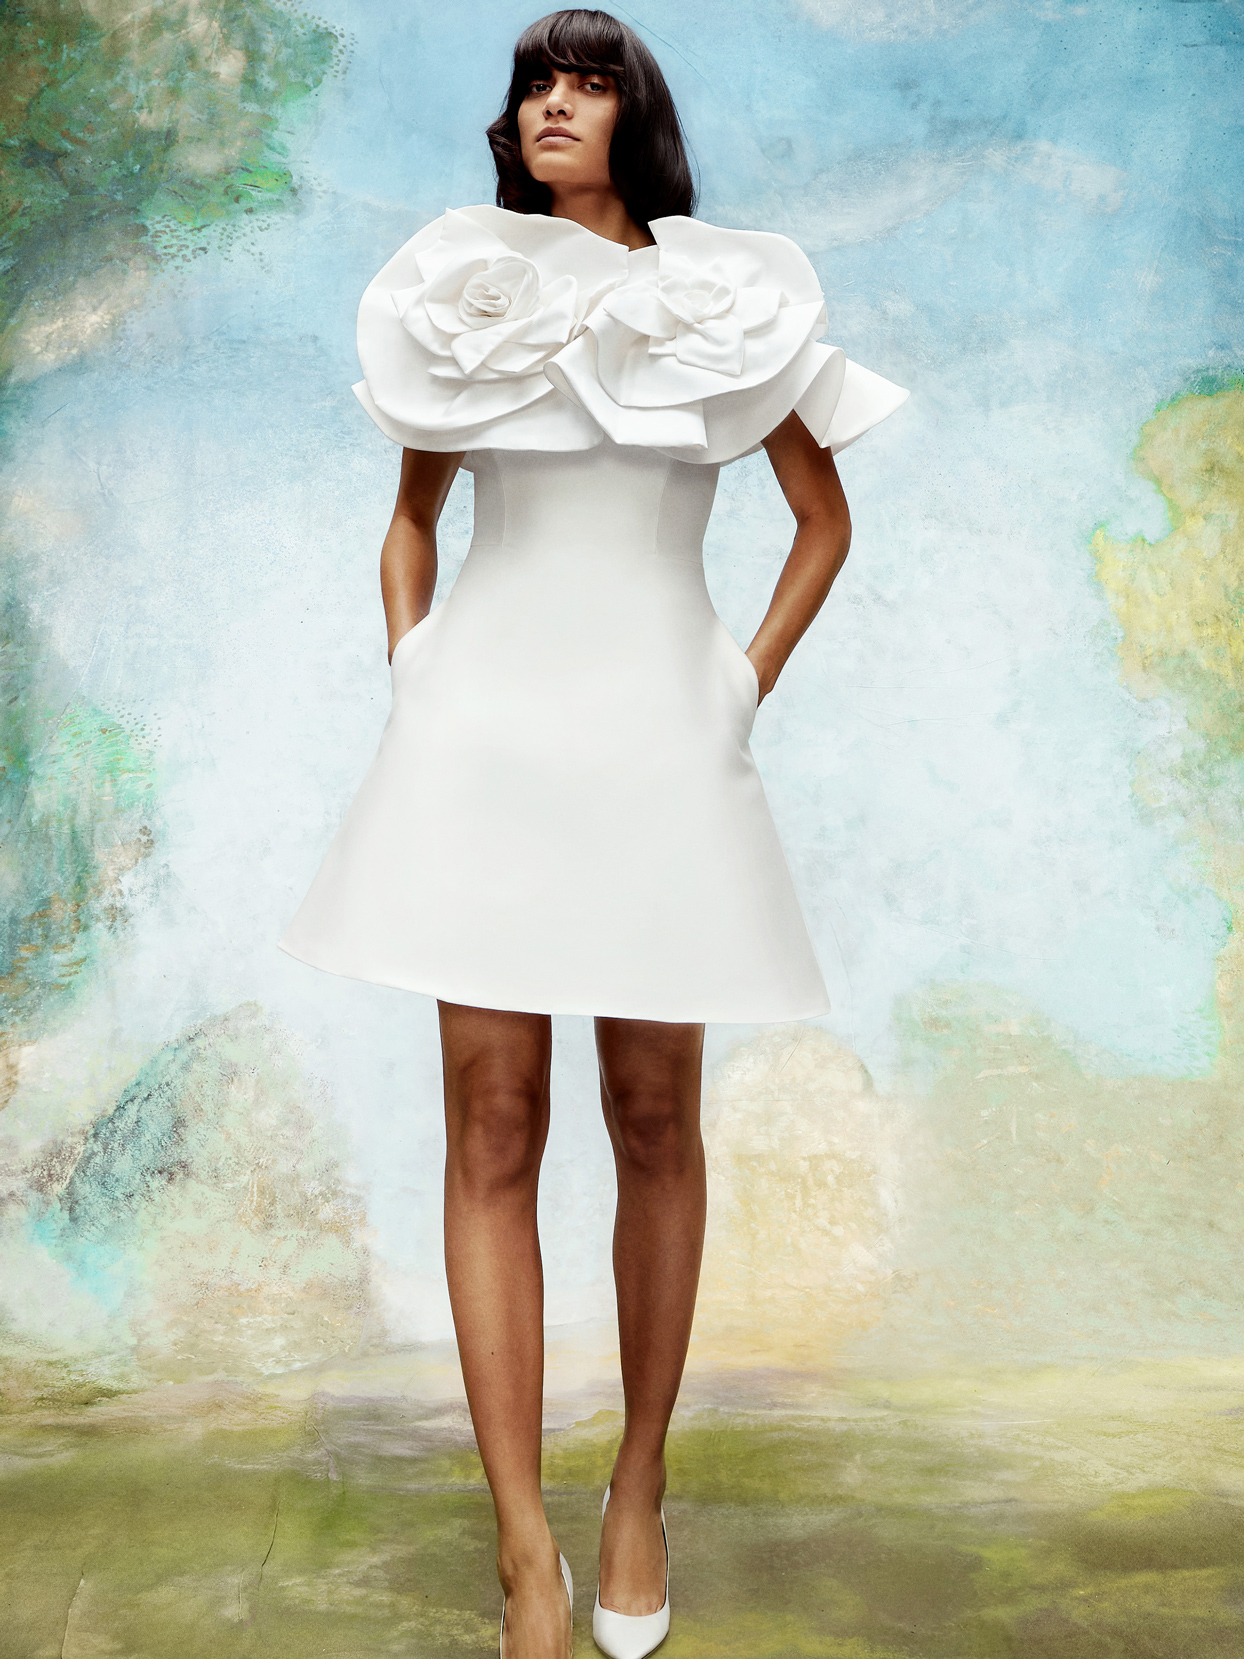 viktor and rolf short wedding dress with 3D floral detail fall 2020